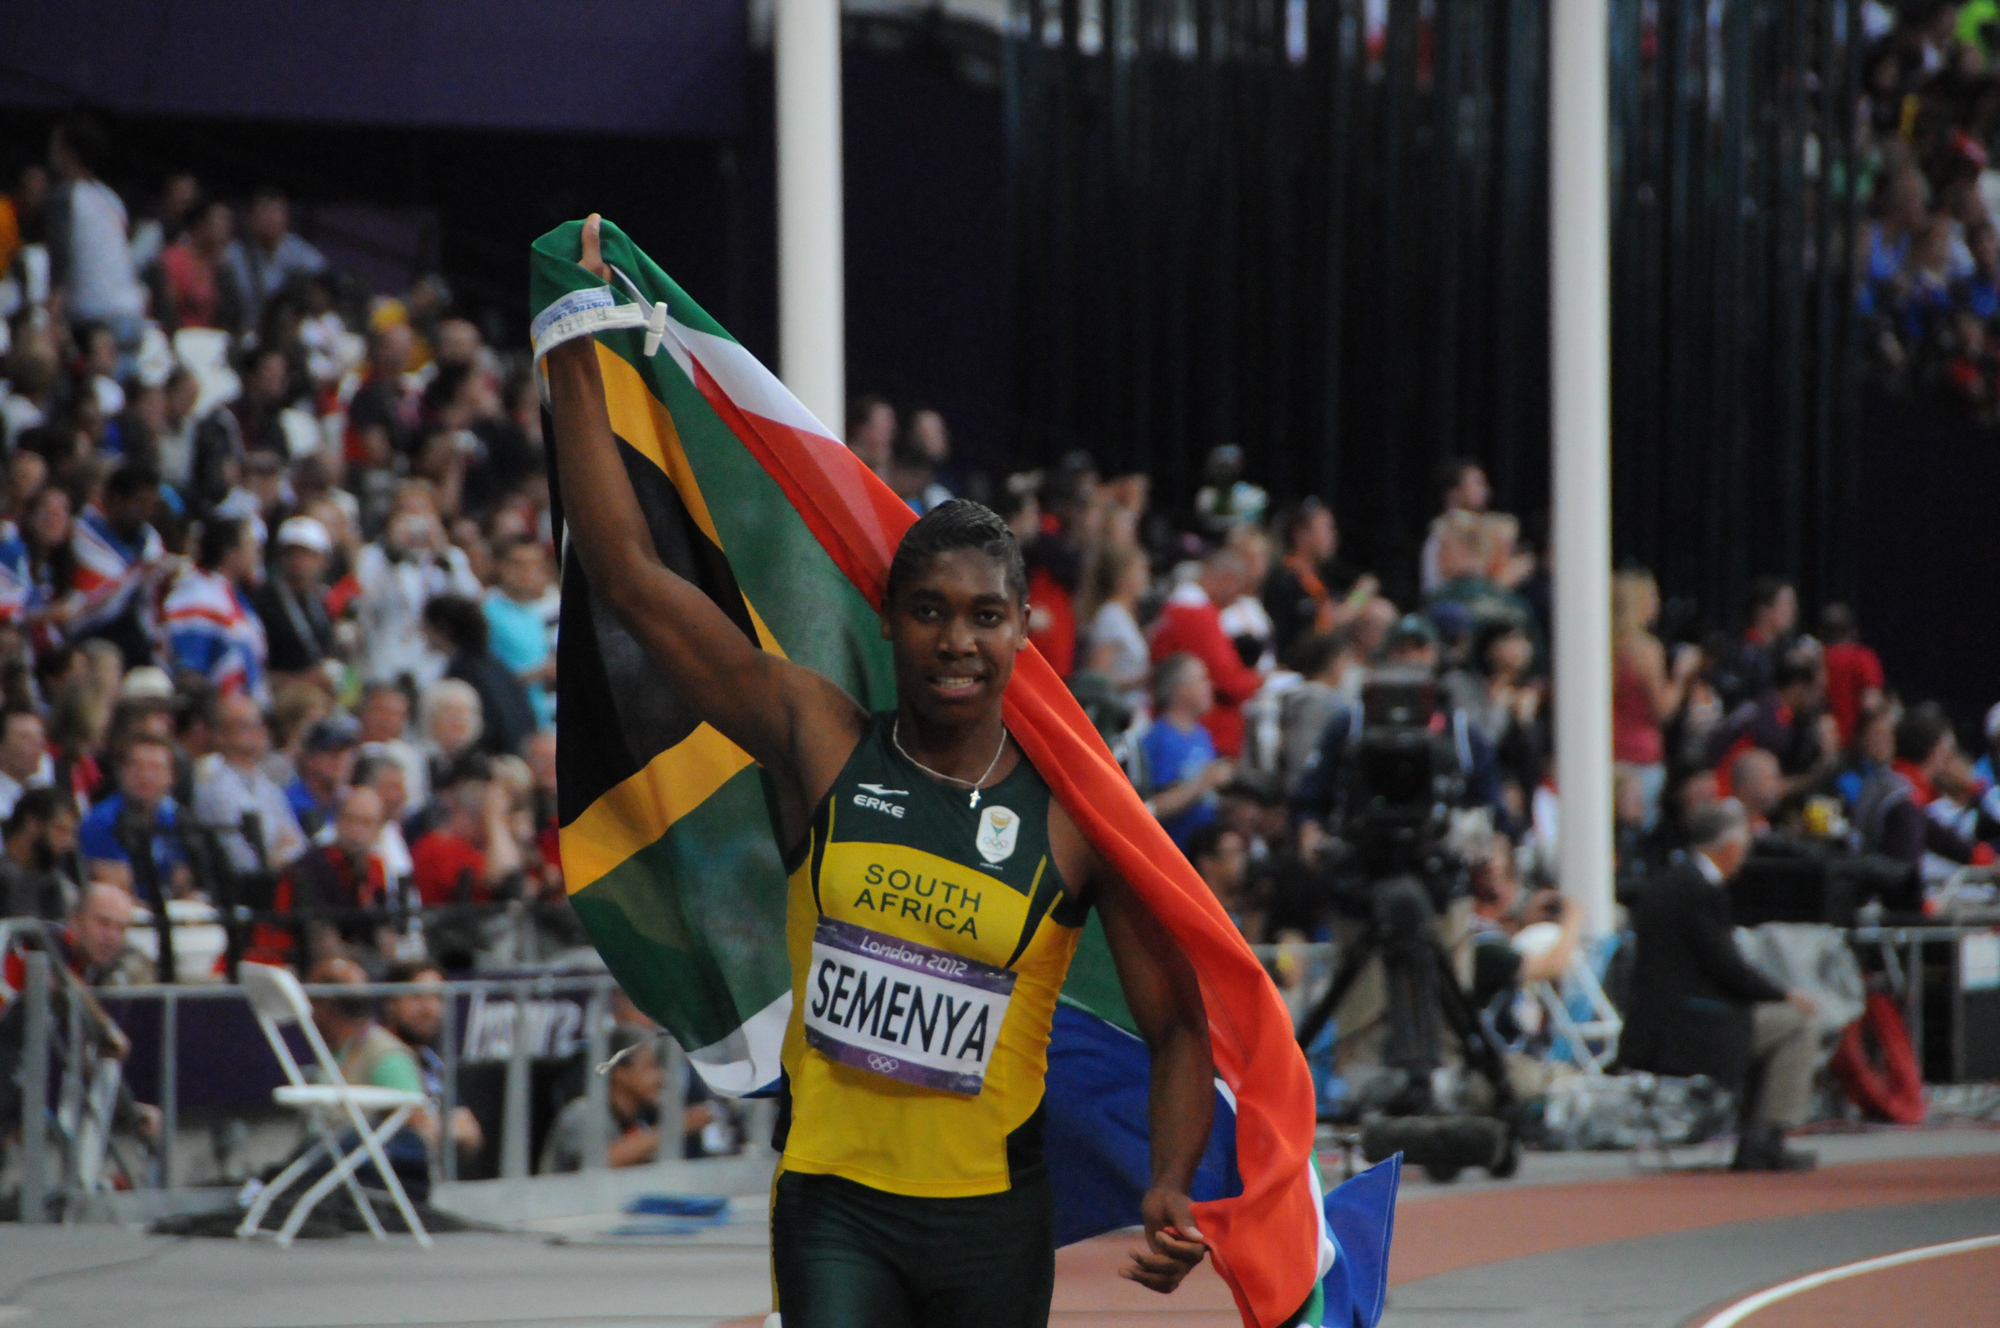 Caster Semenya holds the South African flag after winning the 800-meter gold medal in the 2012 London Olympics on Aug. 11, 2012.   TAB59, VIA WIKIMEDIA COMMONS / CC BY-SA 2.0